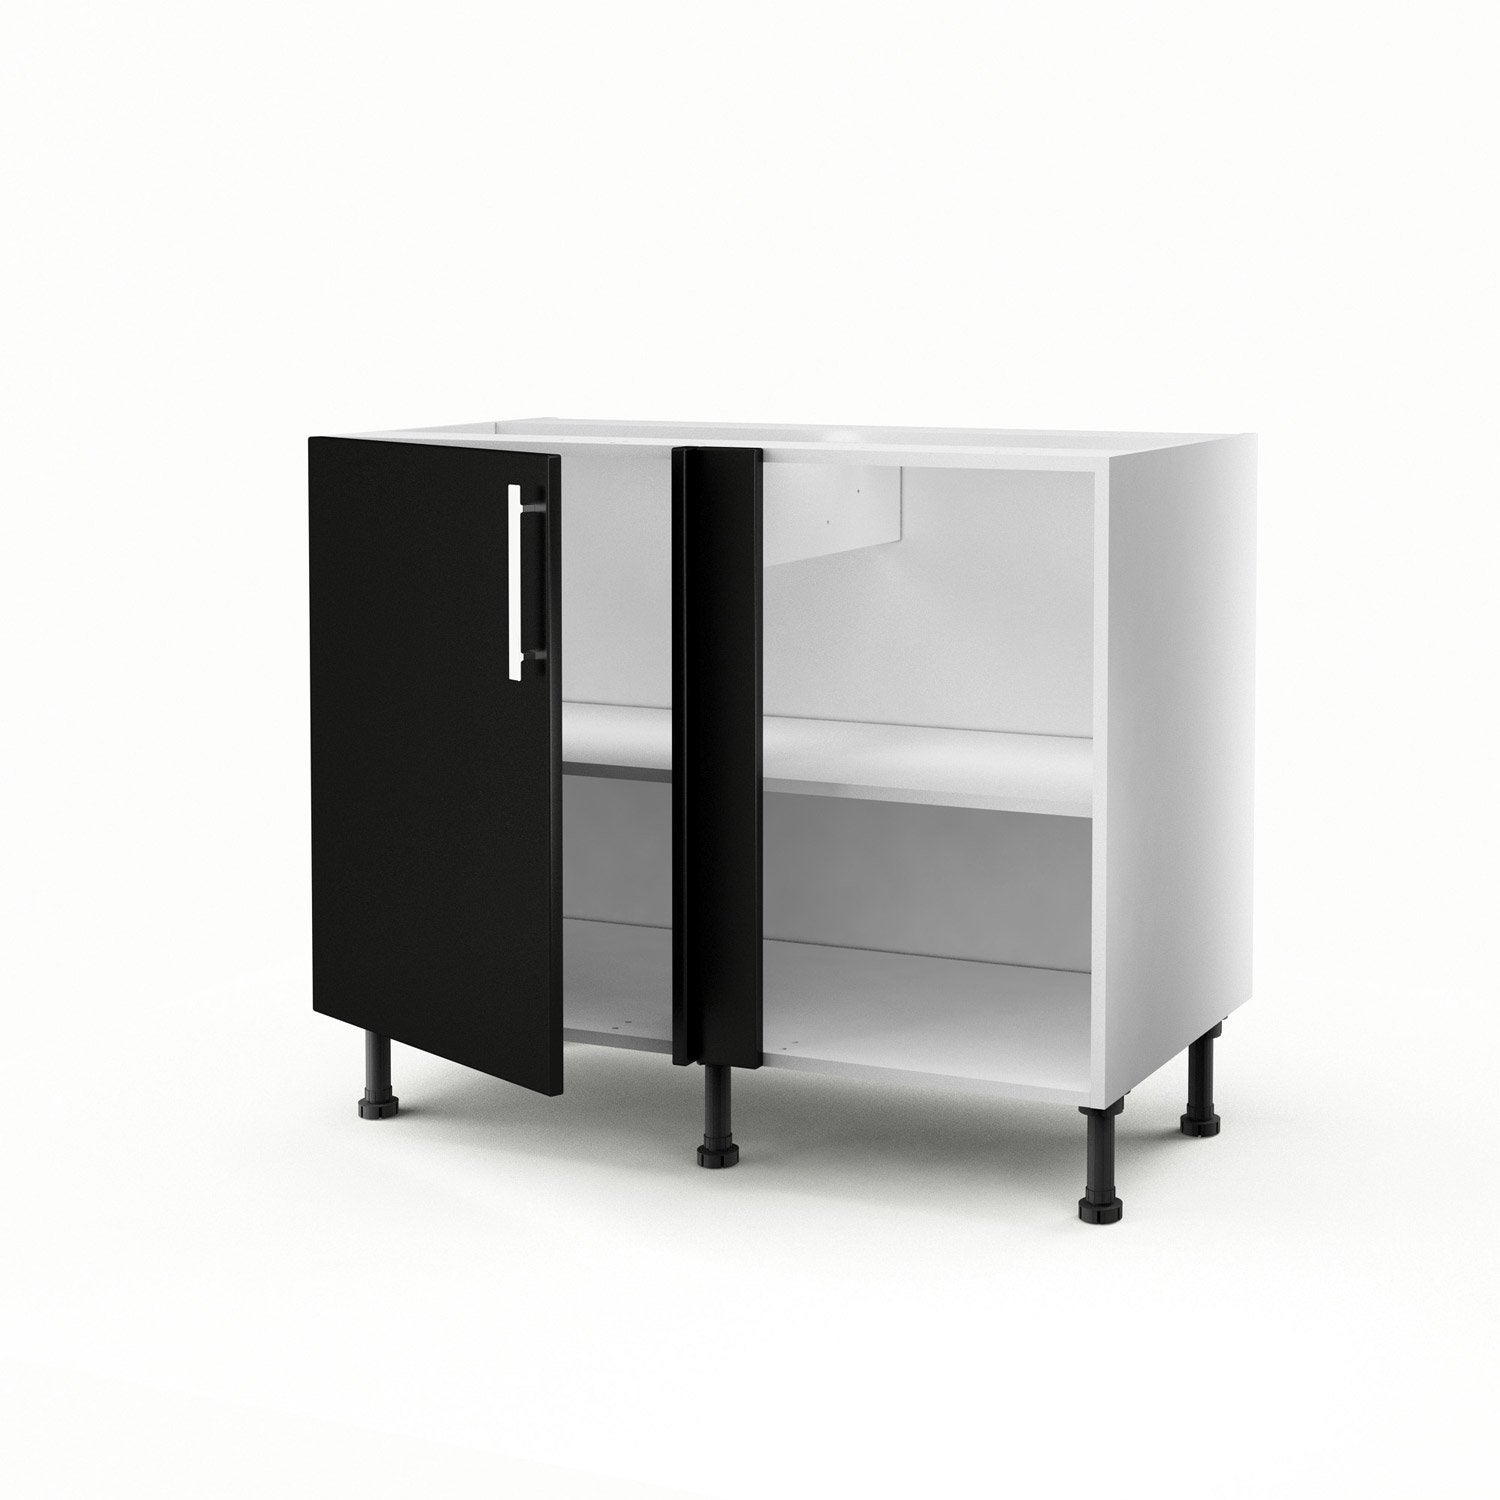 meuble de cuisine bas d 39 angle noir 1 porte d lice x l. Black Bedroom Furniture Sets. Home Design Ideas